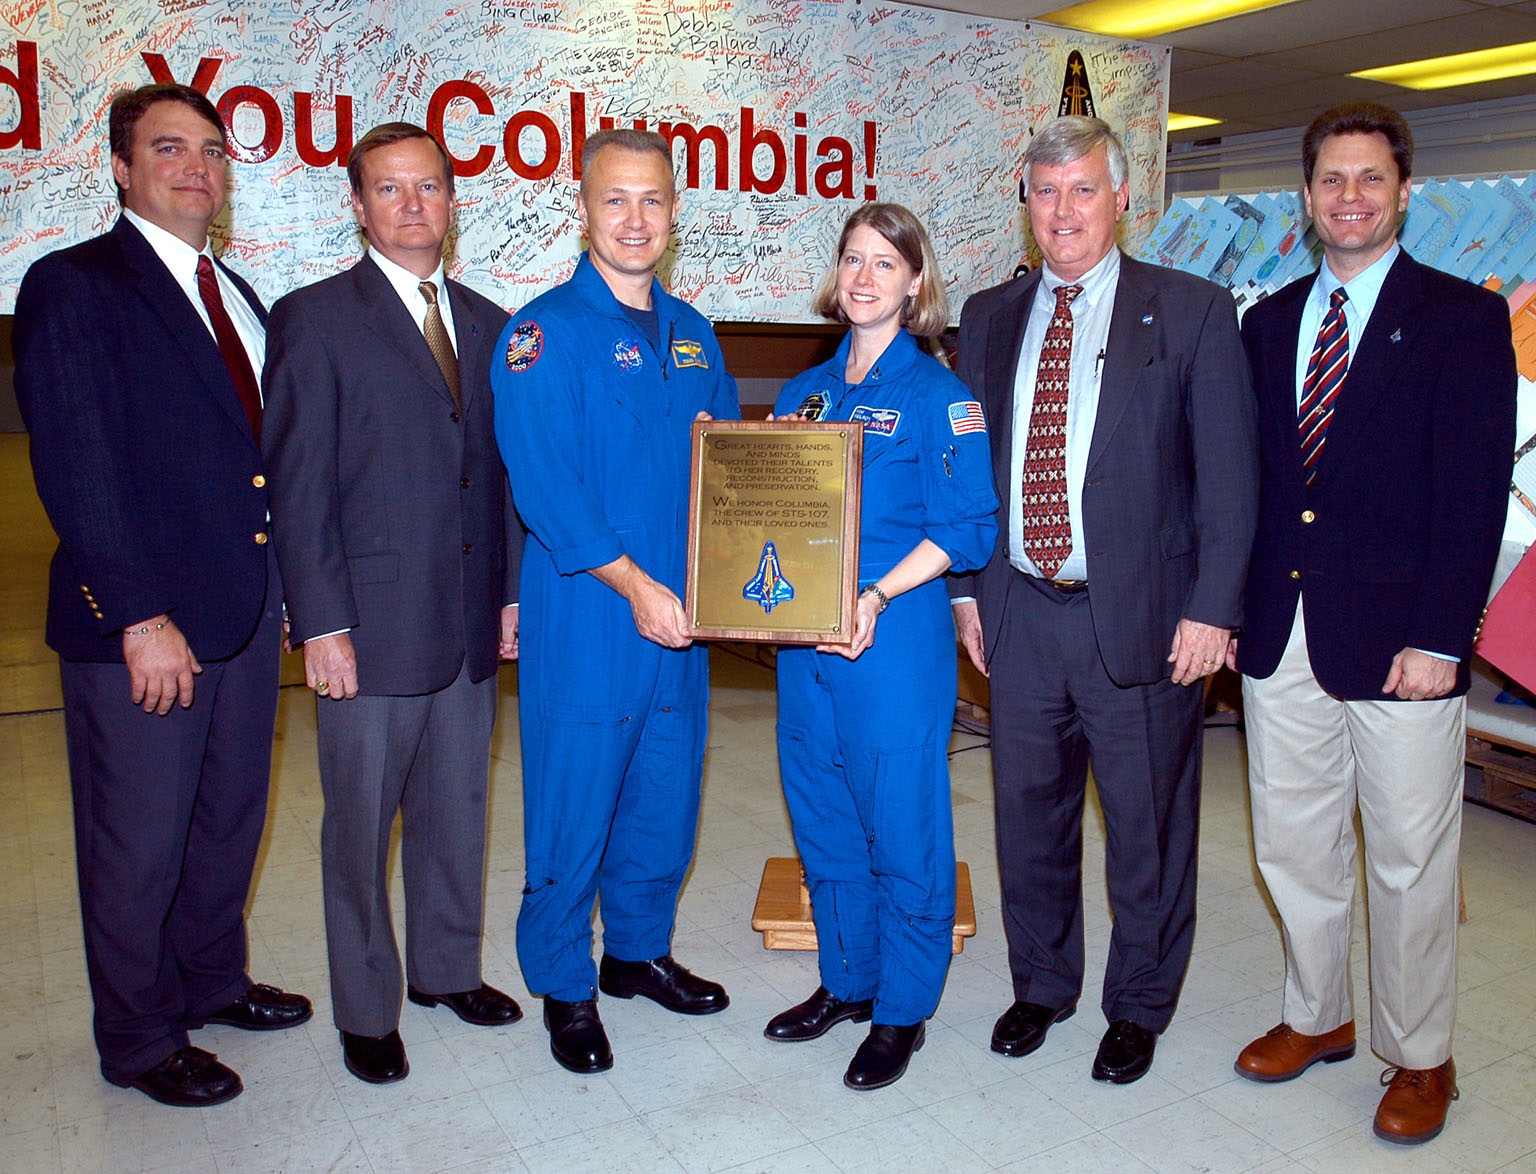 KENNEDY SPACE CENTER, FLA. - Posing with the plaque dedicated to Columbia Jan. 29, 2004, are (left to right) United Space Alliance project leader for Columbia reconstruction Jim Comer, Shuttle Launch Director Mike Leinbach, astronauts Douglas Hurley and Pam Melroy, Center Director Jim Kennedy and NASA Vehicle Manager Scott Thurston. The dedication of the plaque was made in front of the 40-member preservation team in the ?Columbia room,? a permanent repository in the Vehicle Assembly Building of the debris collected in the aftermath of the tragic accident Feb. 1, 2003, that claimed the orbiter and lives of the seven-member crew.